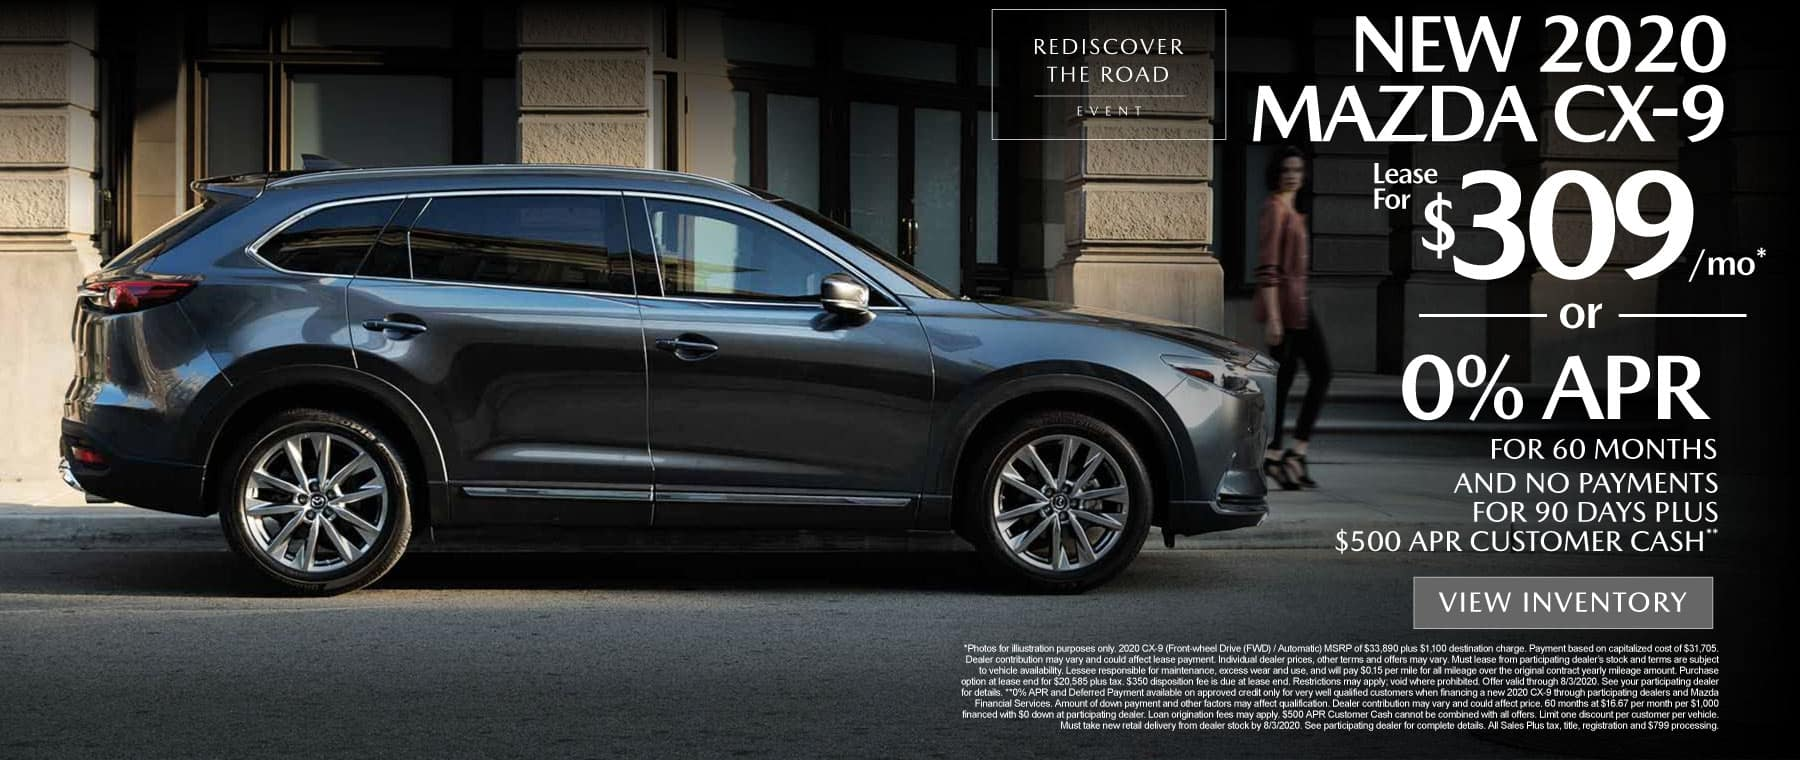 New 2020 MAZDA CX-9 lease for $309 a month or 0% APR for 60 months and no payments for 90 days plus $500 APR customer cash.